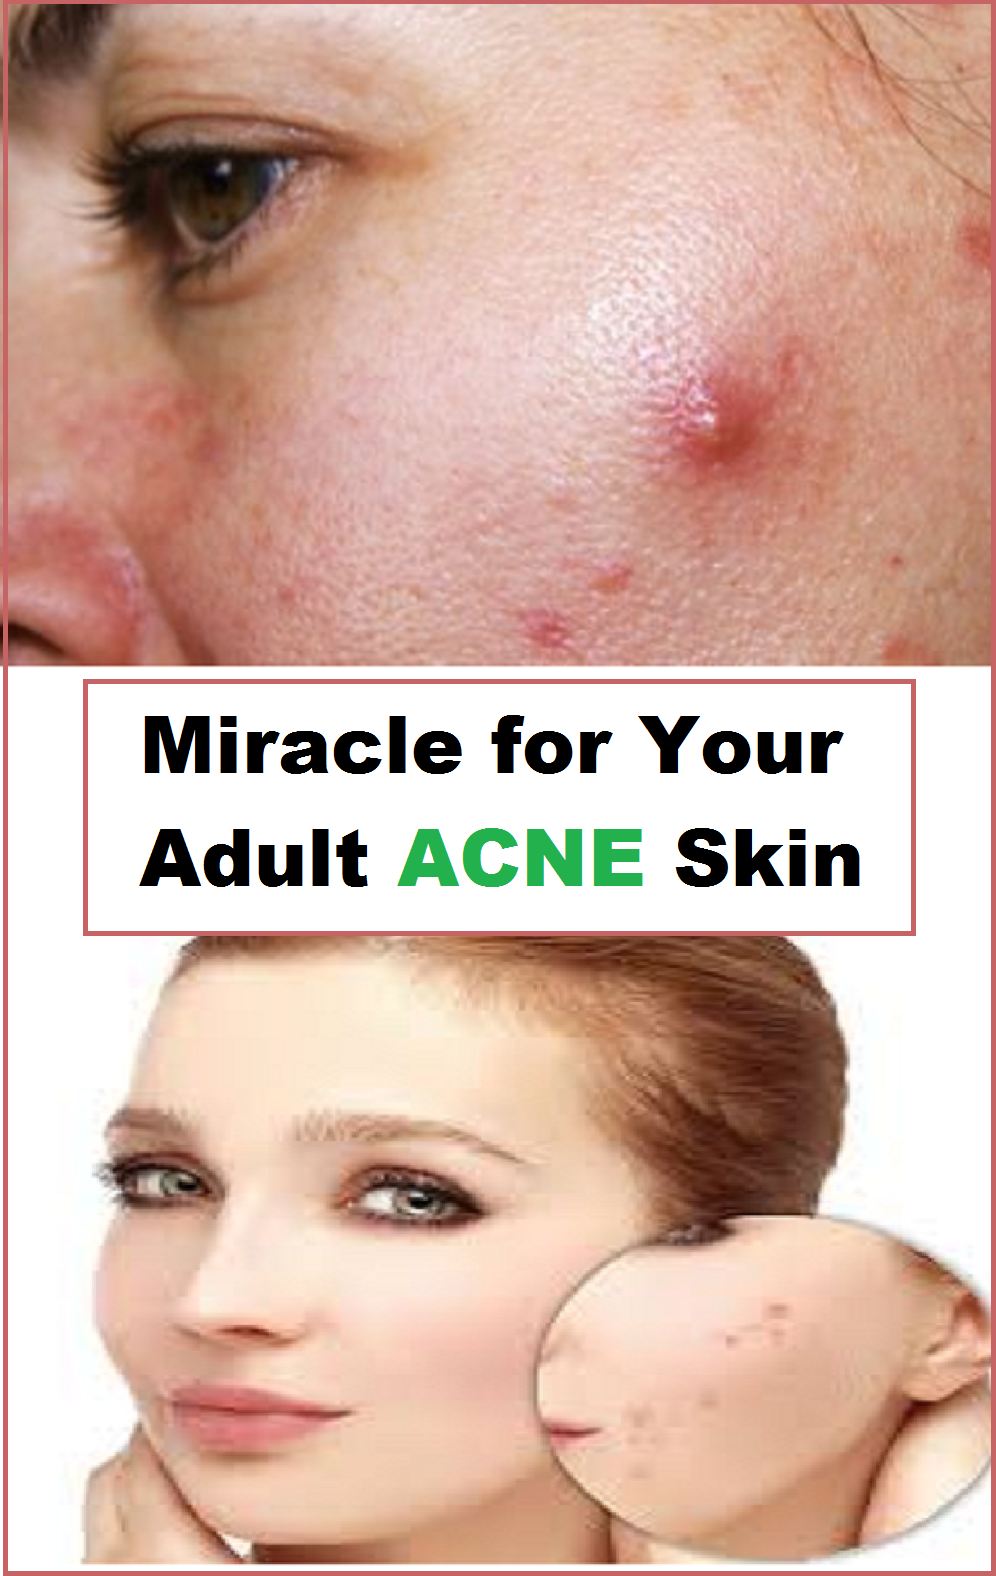 Miracle For Your Adult Acne Skin Acne Rosacea Acne Skin Pimples Skin Breaking